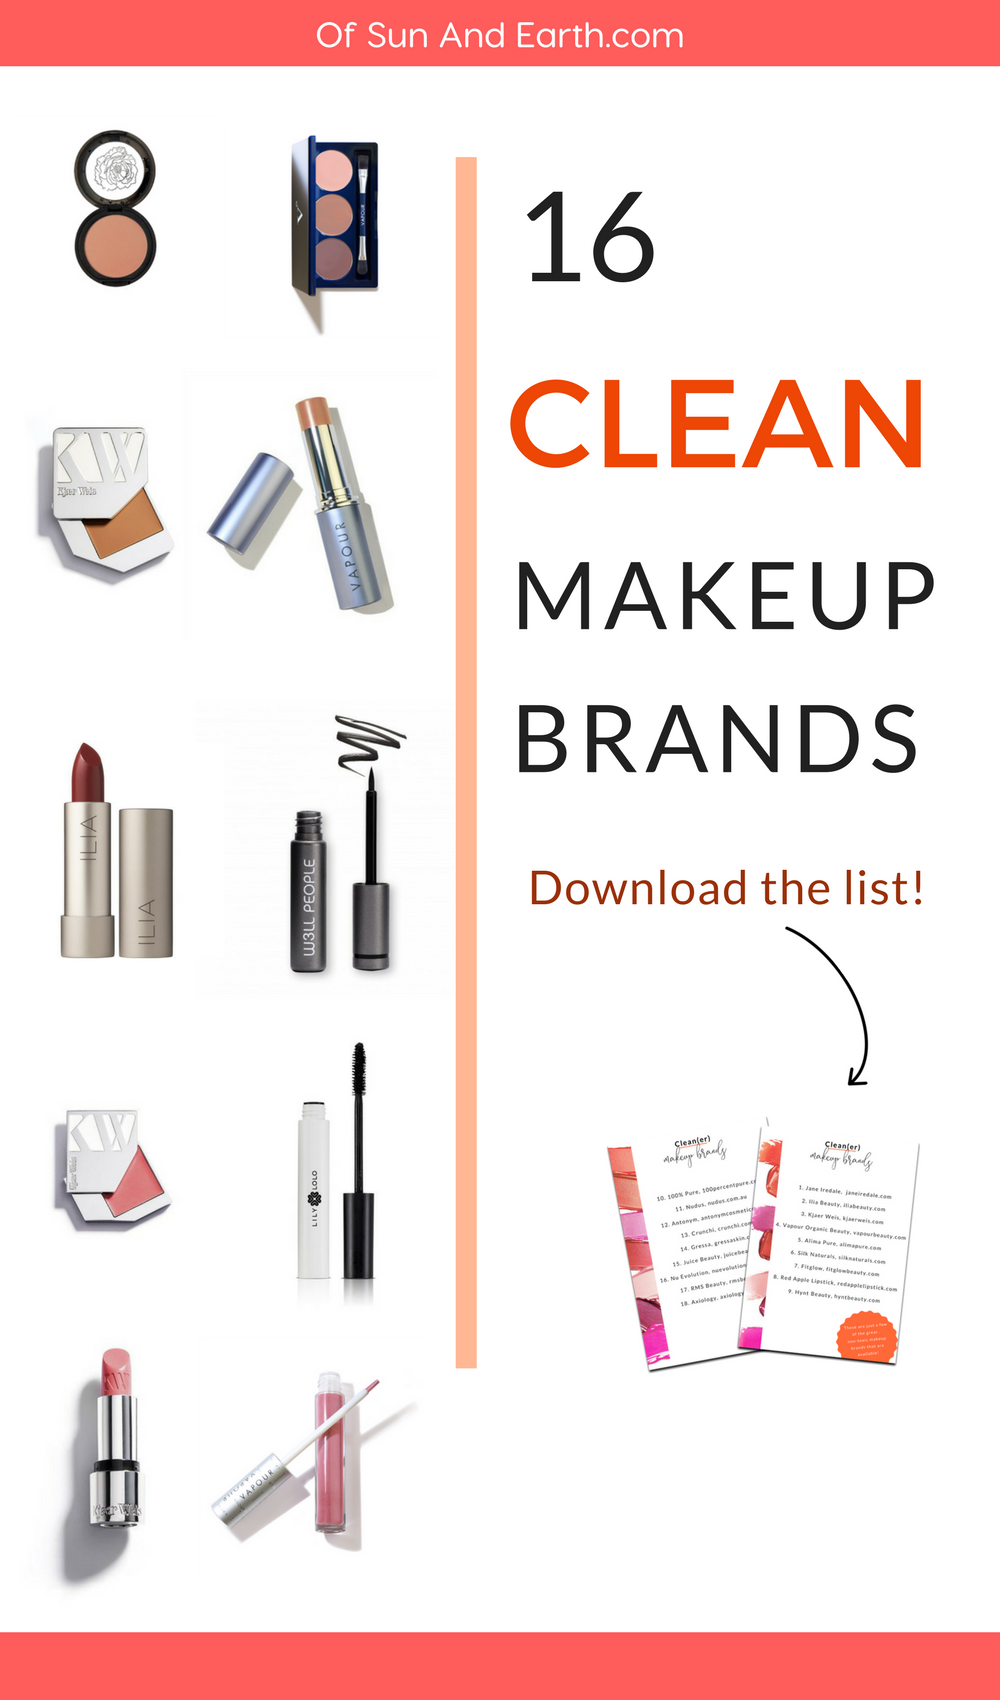 Are you cleaning up your makeup act and want to know about